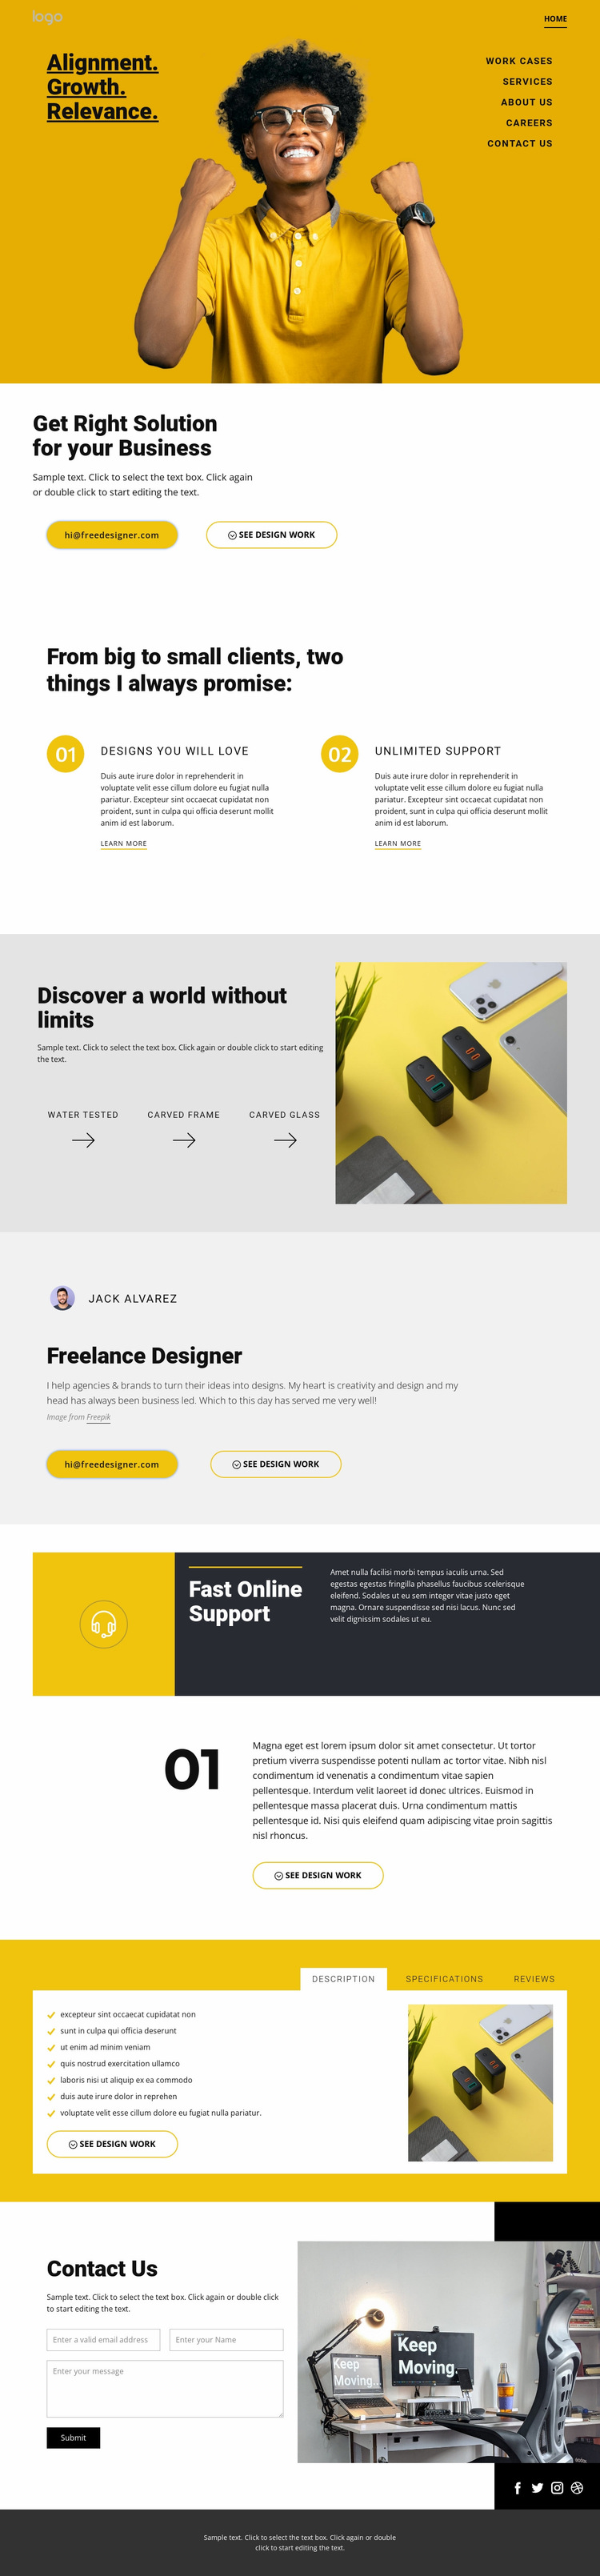 Quality is our goal Website Builder Templates